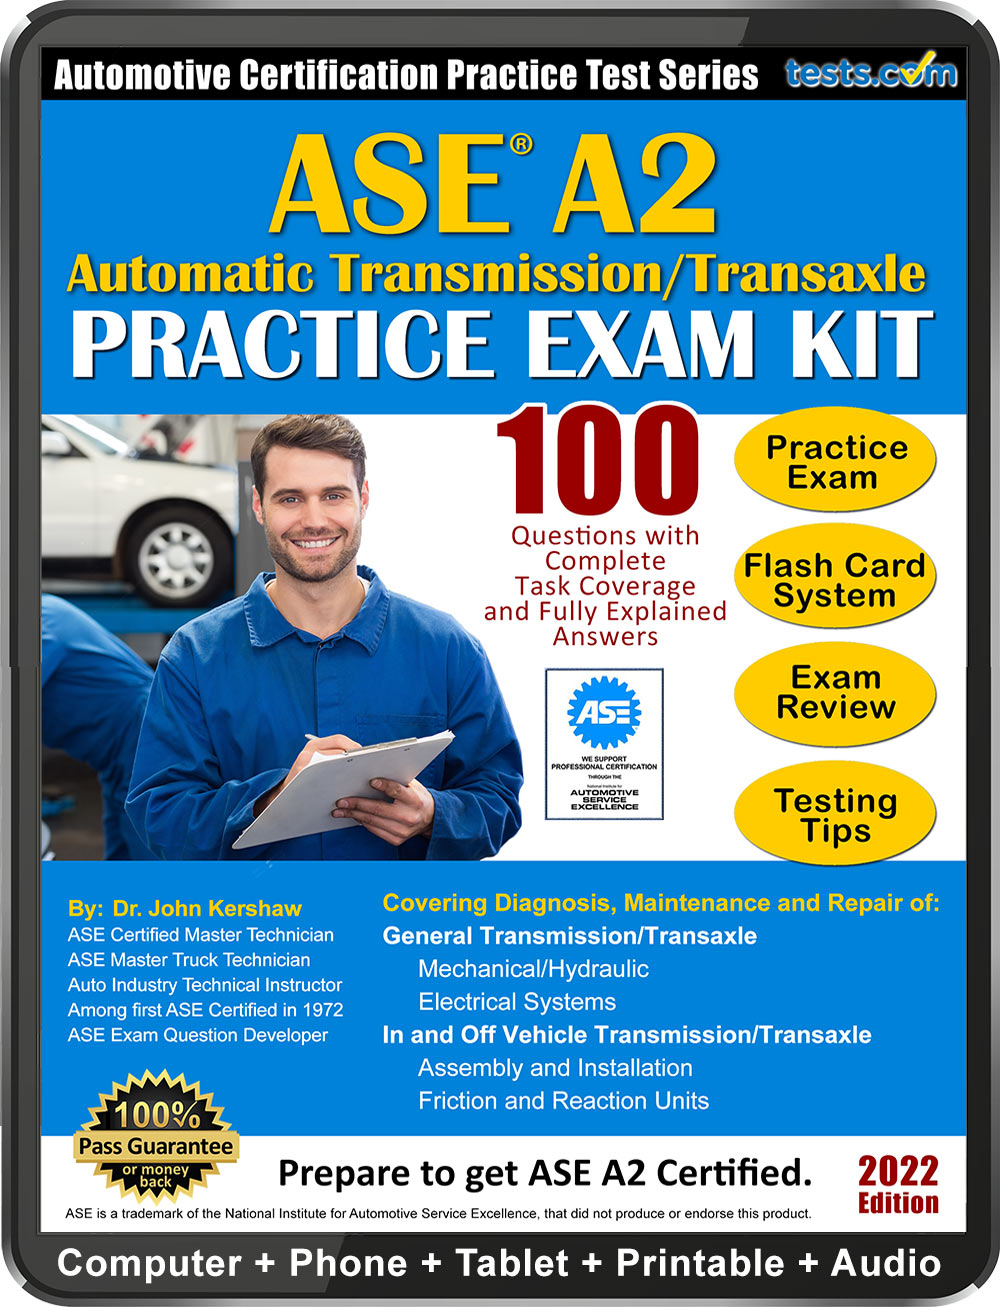 Ase A2 Practice Test Kit